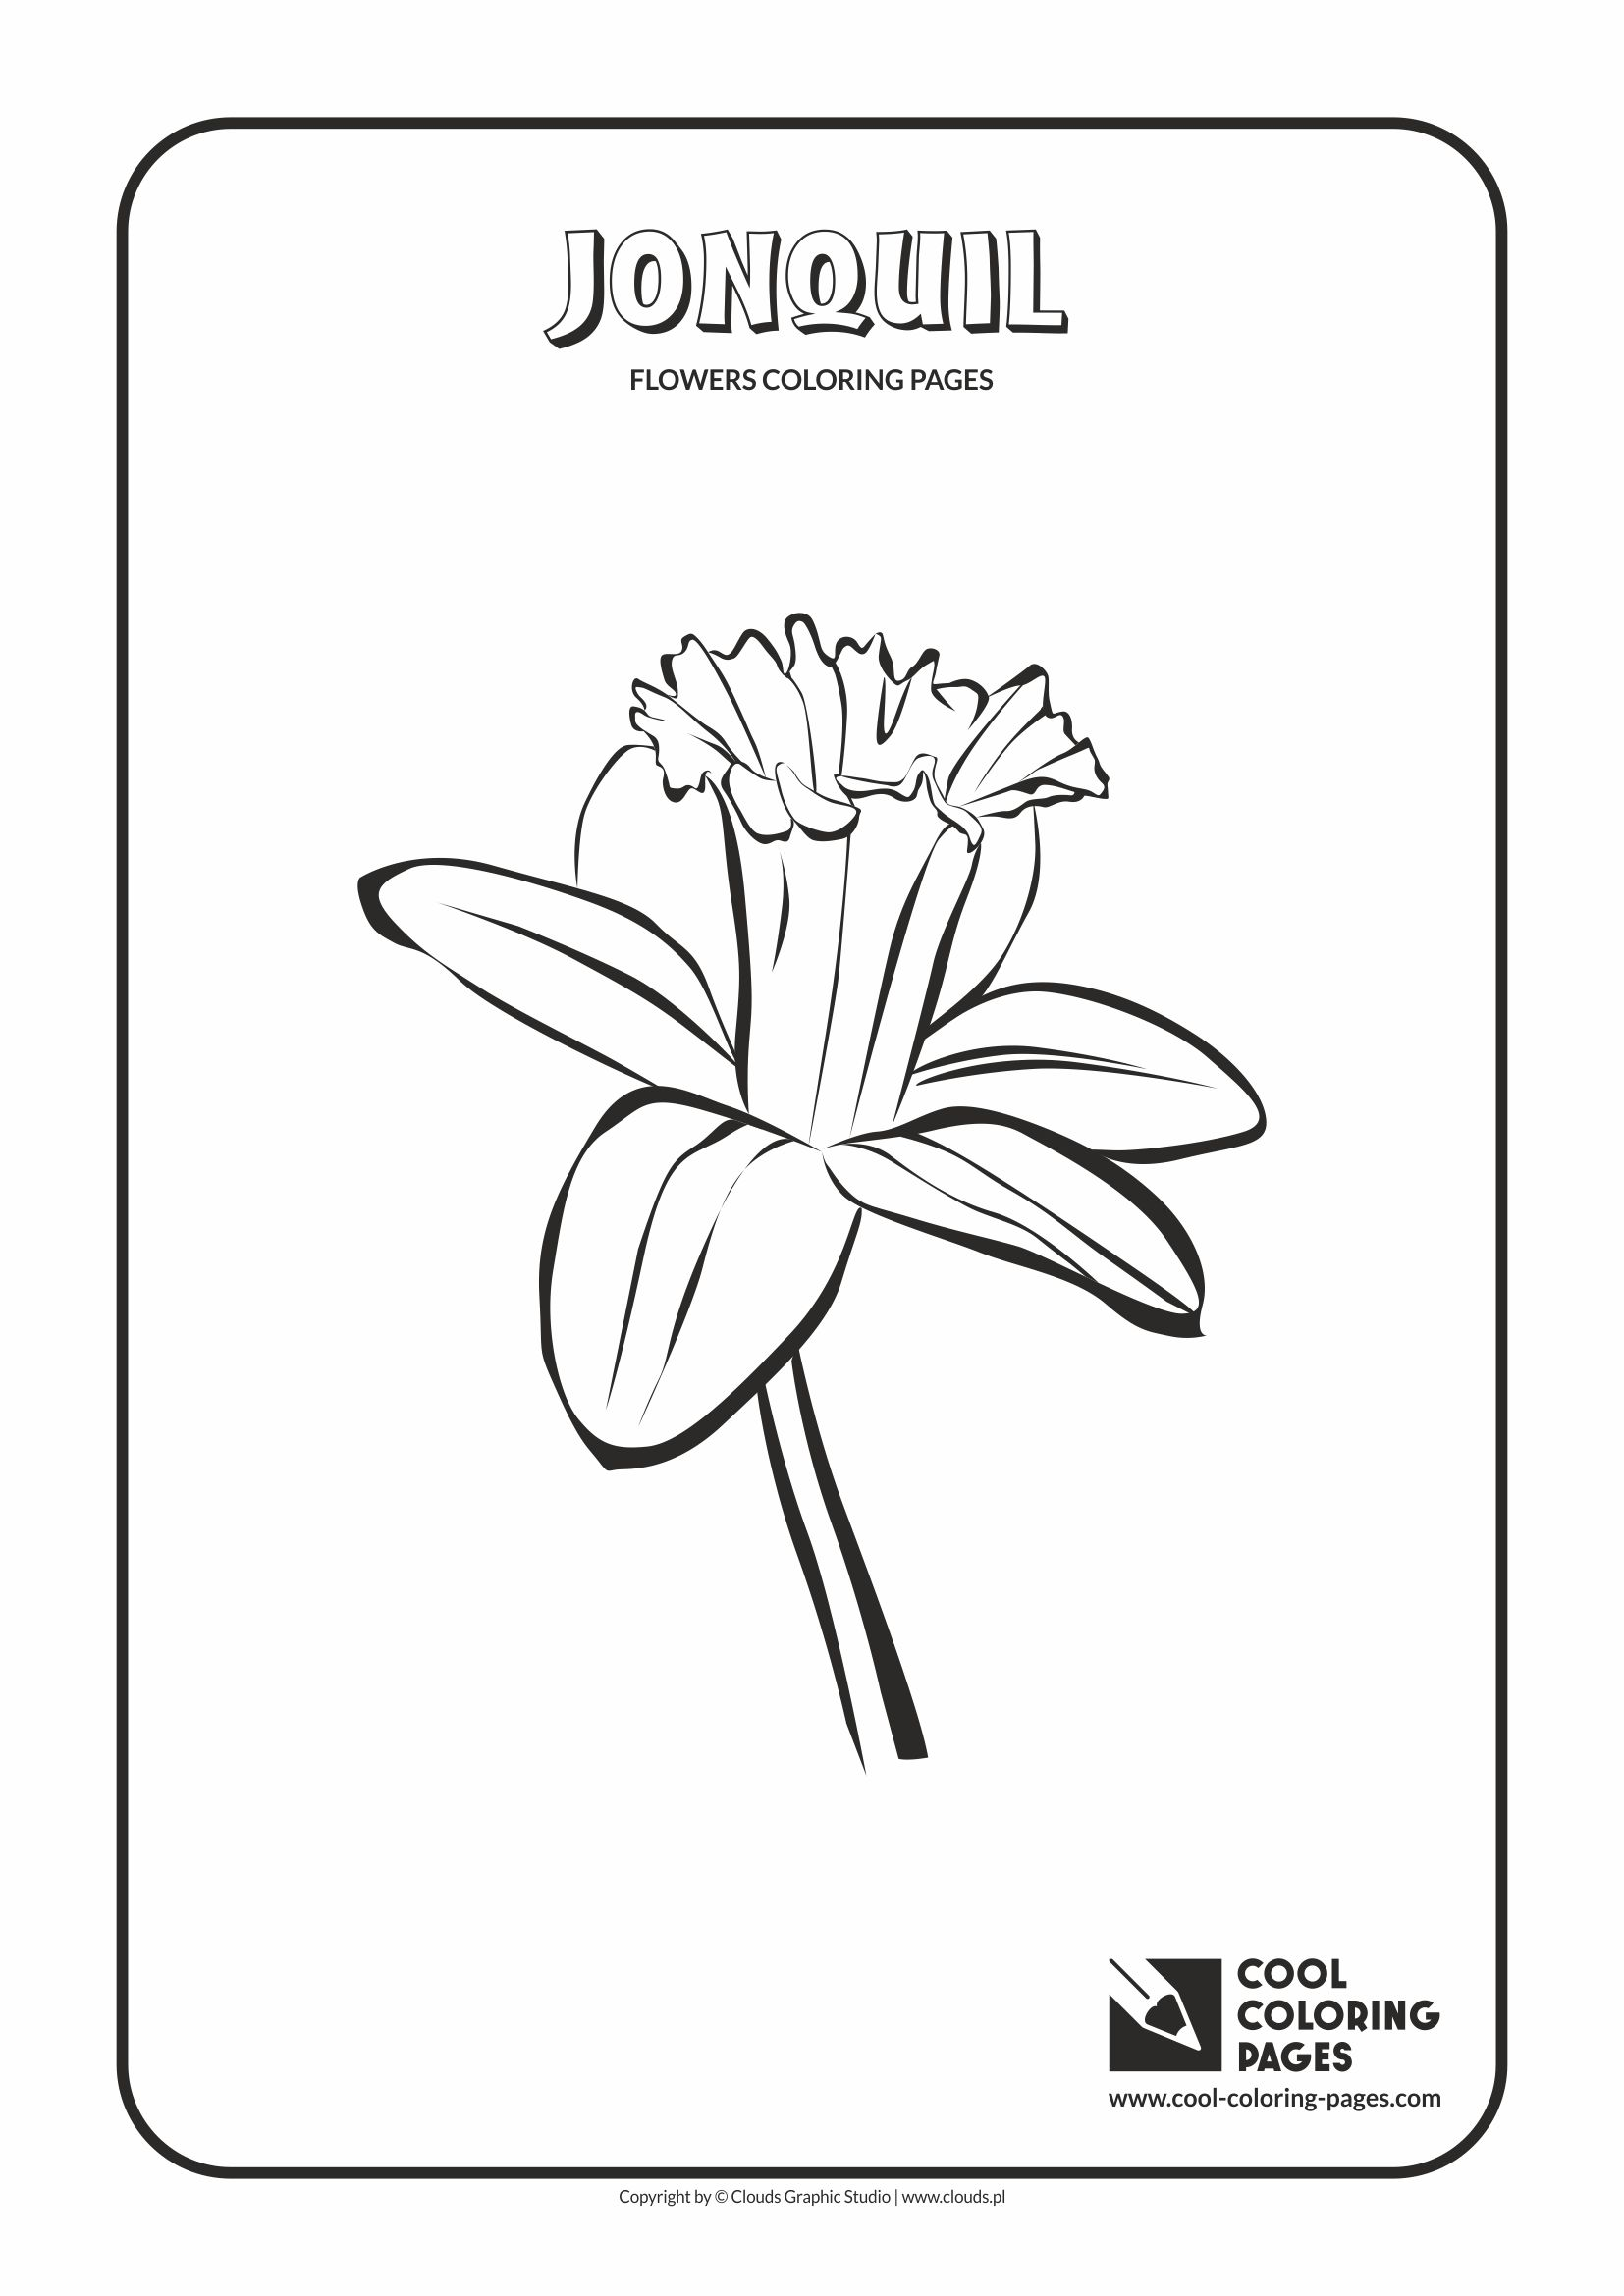 jonquil coloring page cool coloring pages